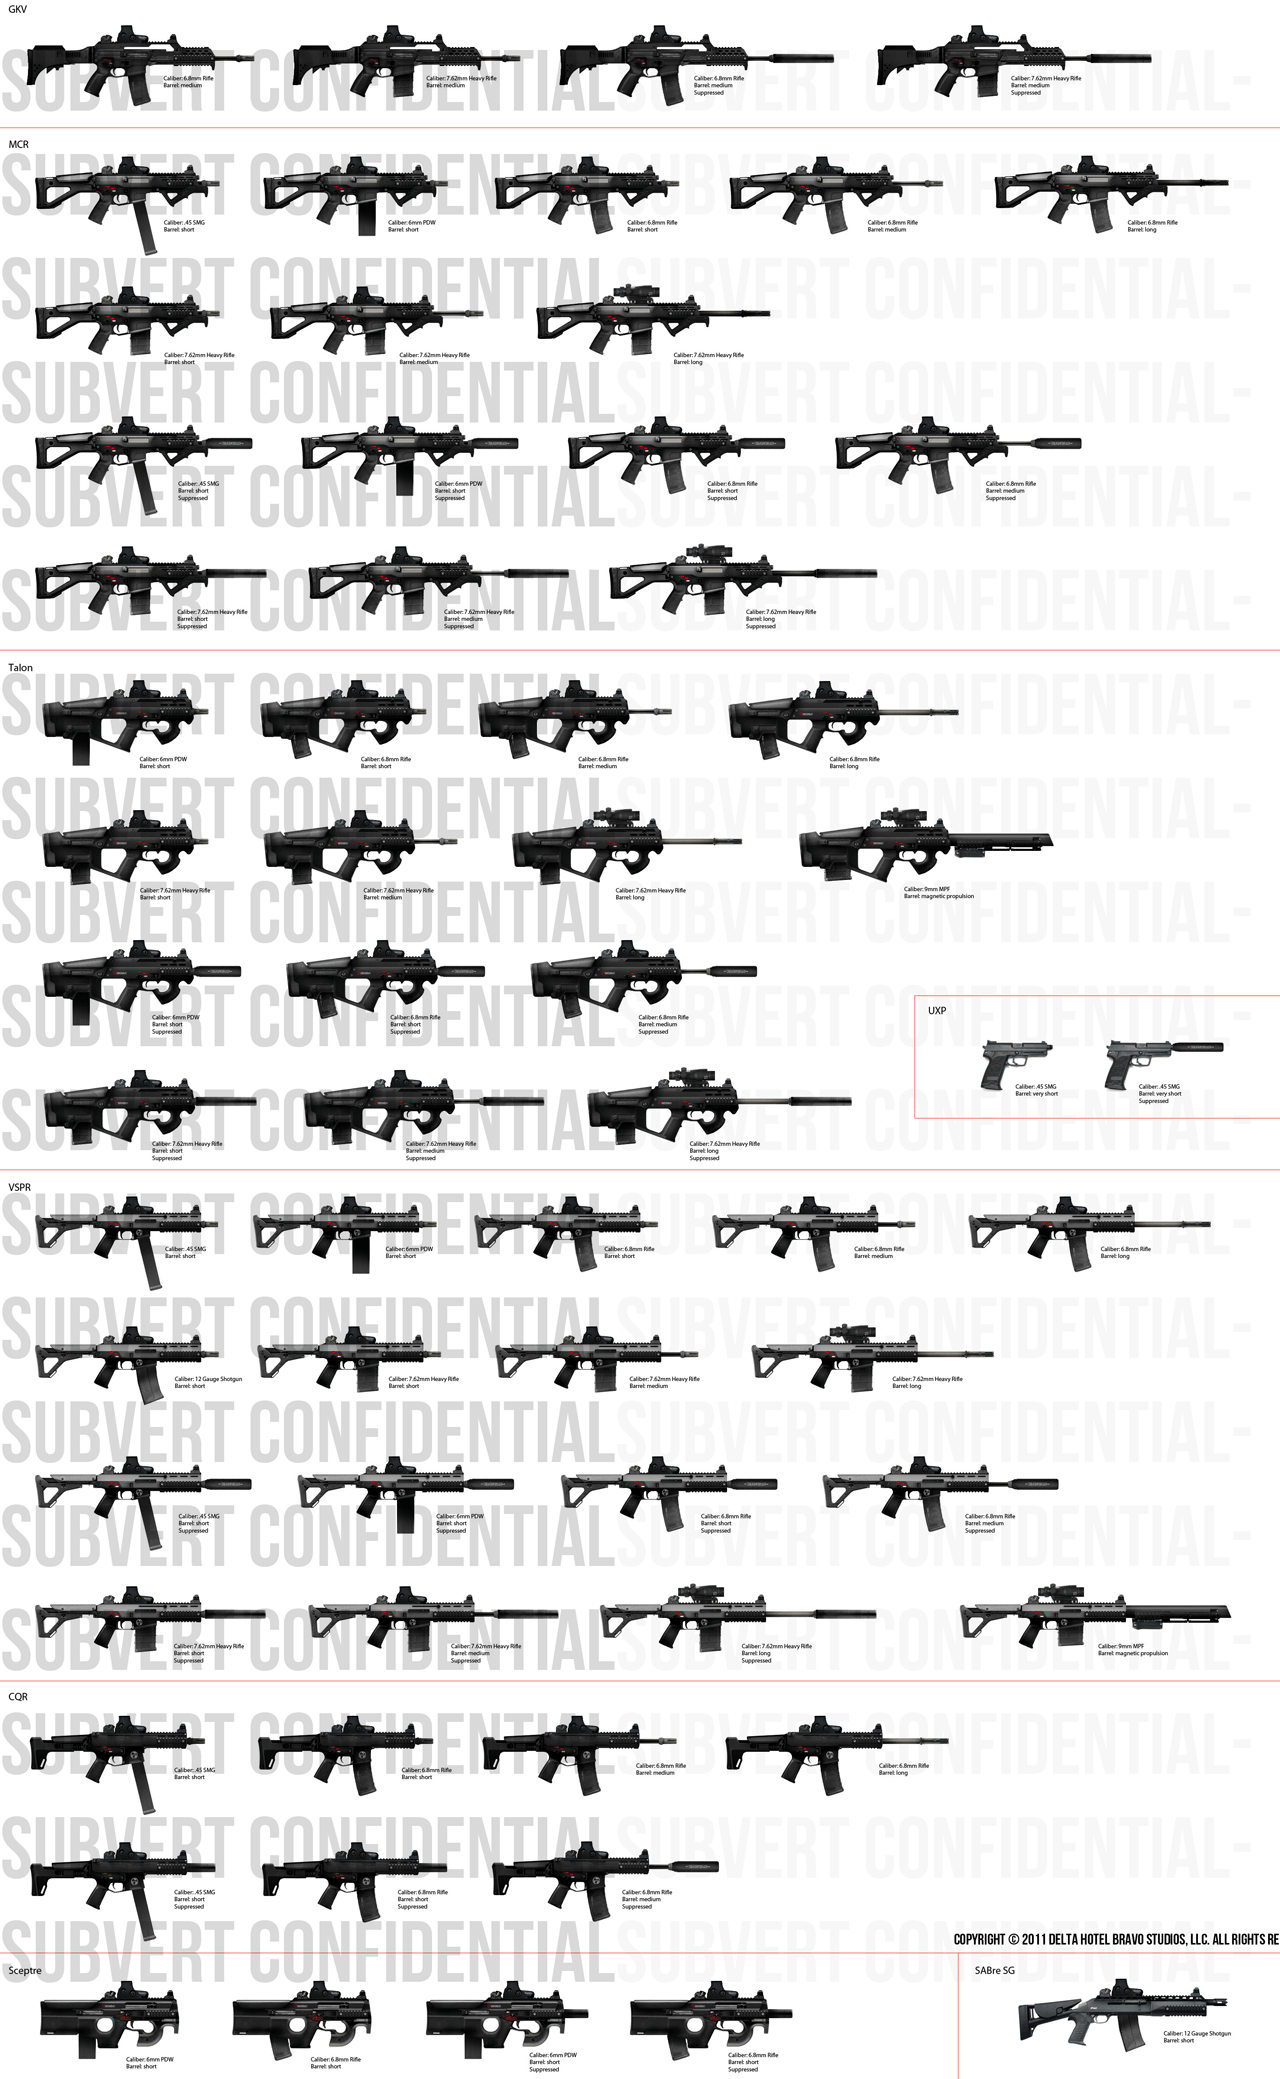 Weapon Chart Image